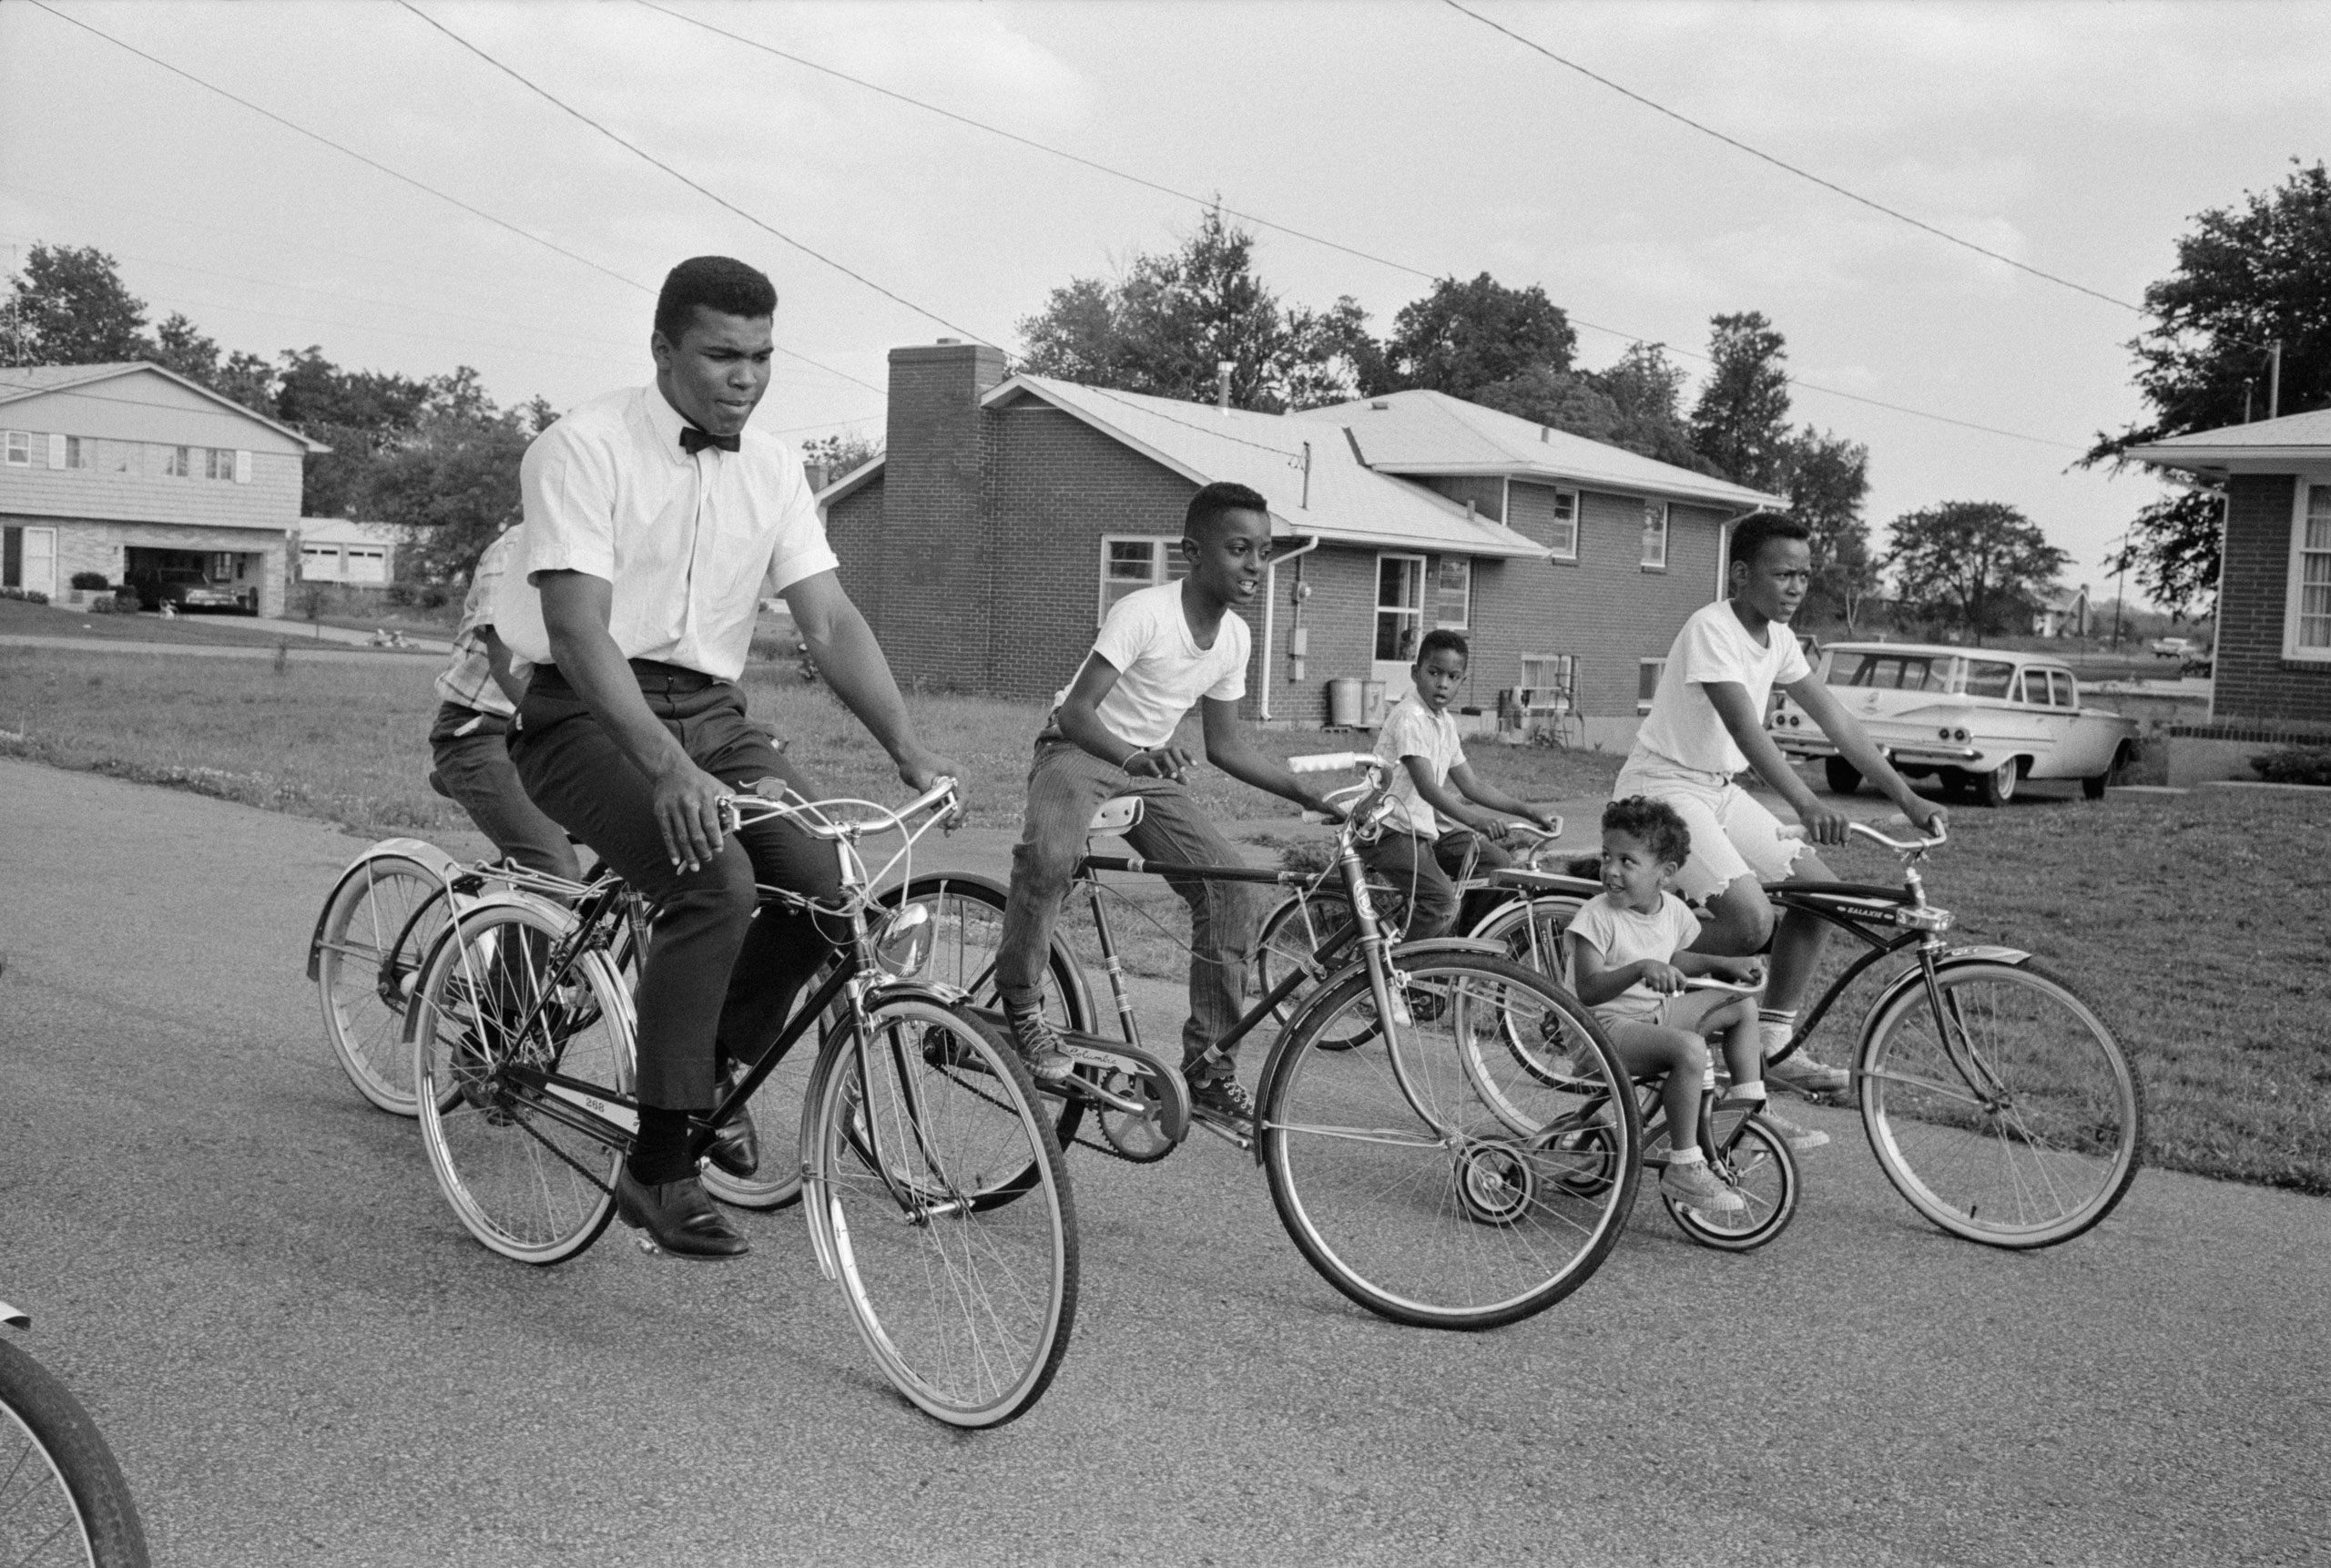 Clay, soon to be known as Muhammad Ali, bicycles near his parents' house in Louisville, Ky., circa 1963.